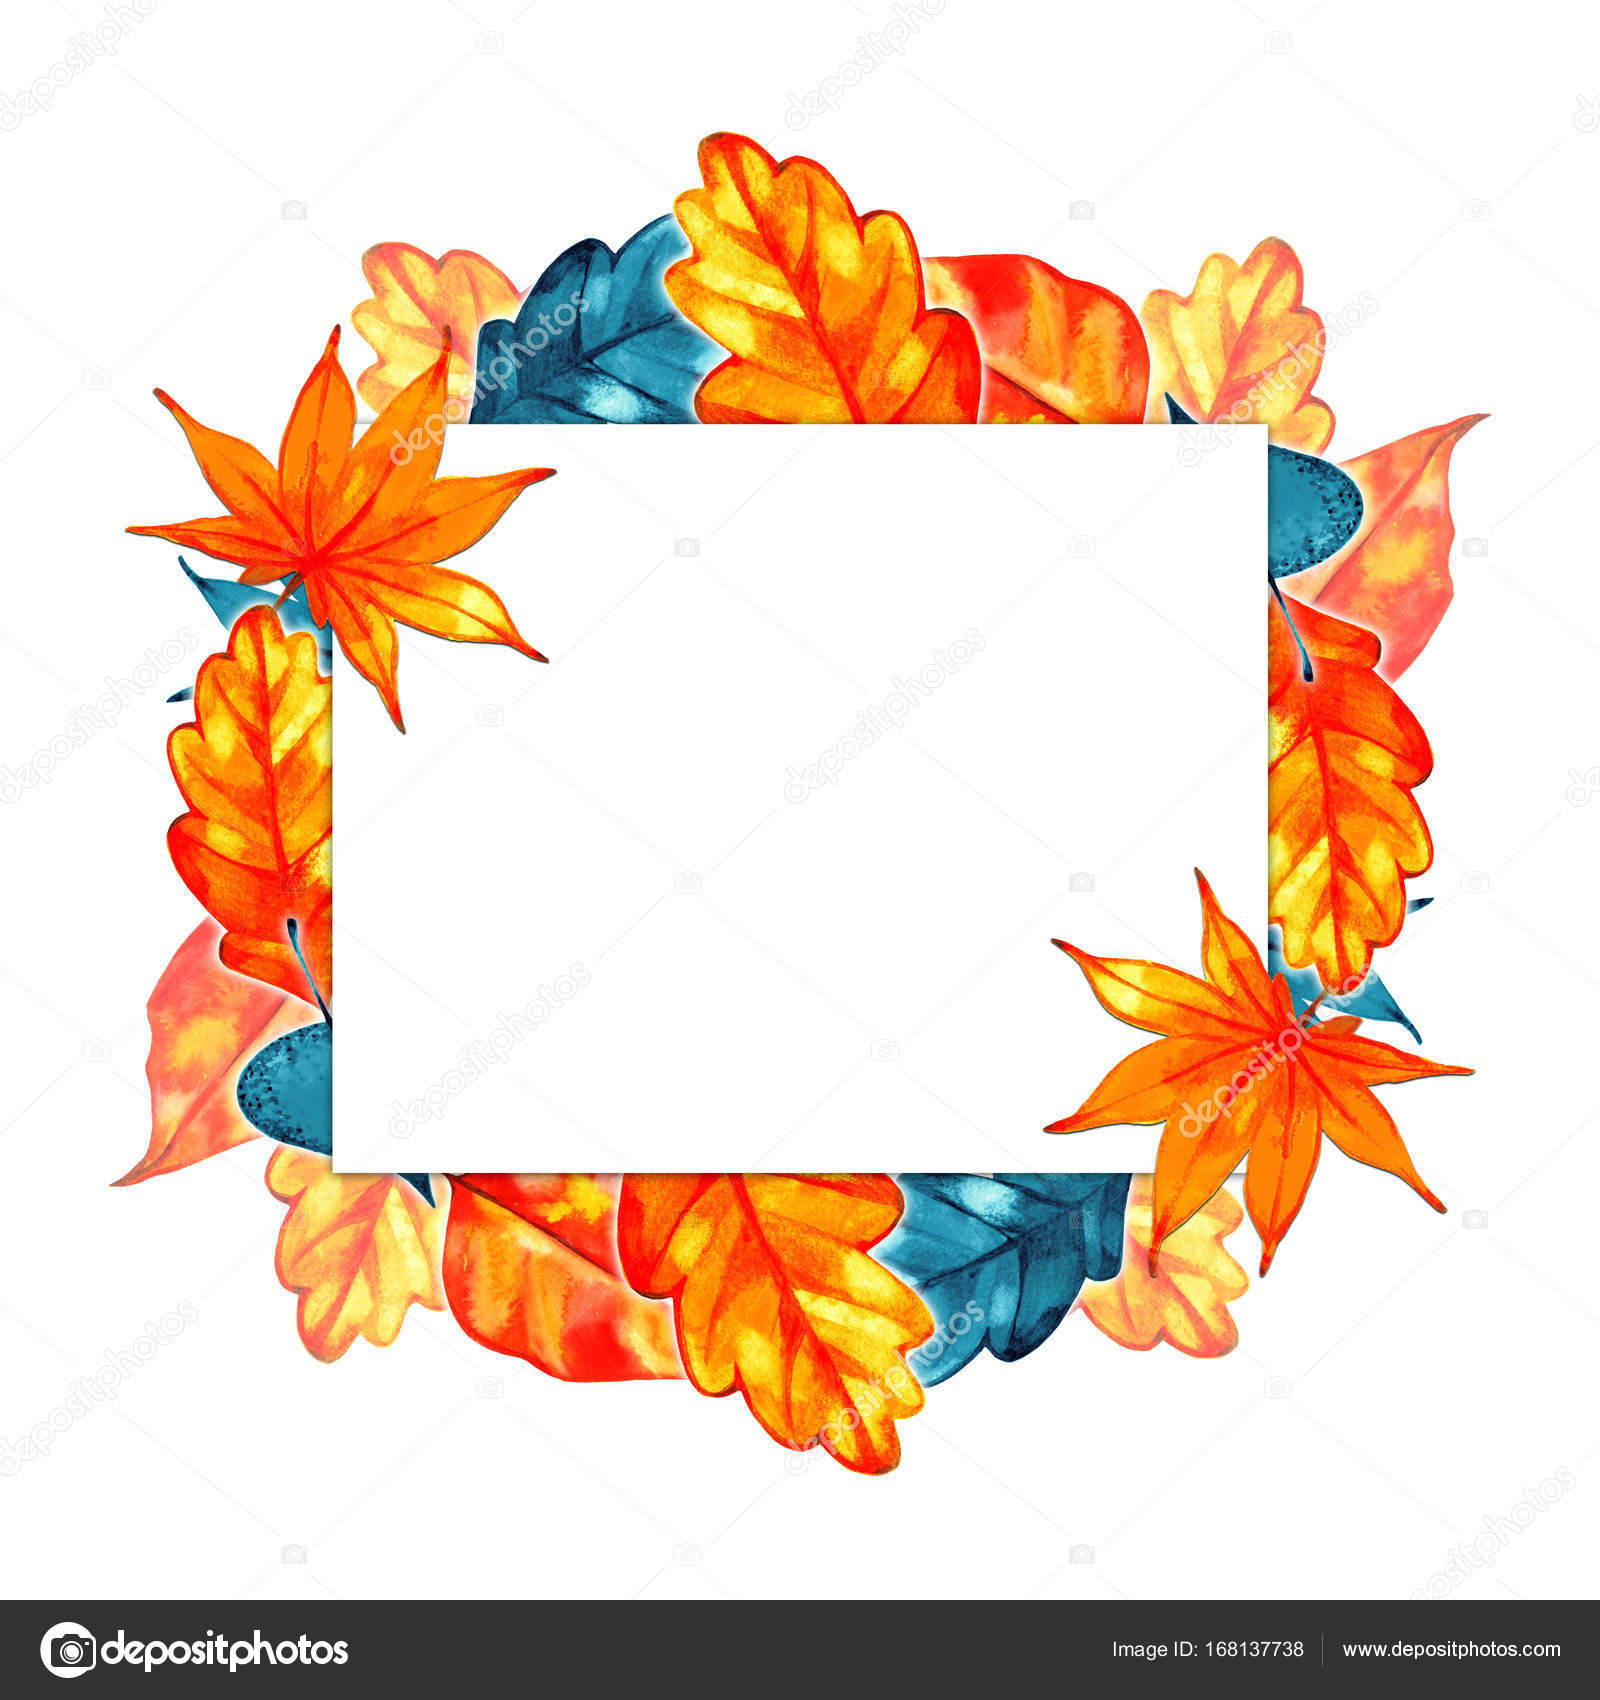 Autumn Background Border. Abstract Artistic Fall Frame